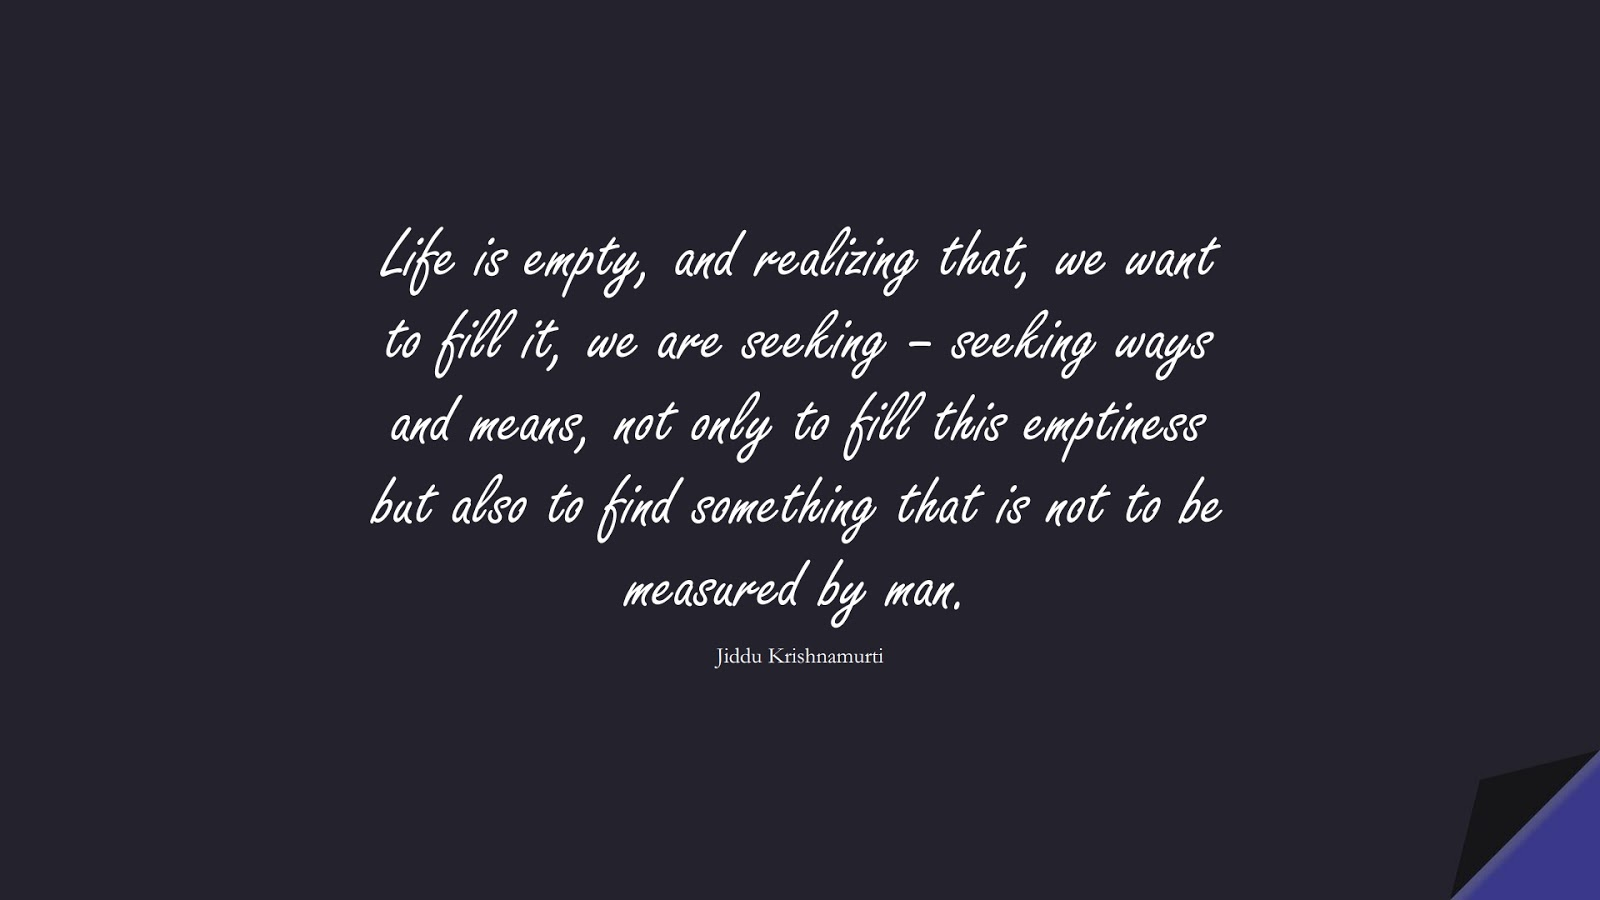 Life is empty, and realizing that, we want to fill it, we are seeking – seeking ways and means, not only to fill this emptiness but also to find something that is not to be measured by man. (Jiddu Krishnamurti);  #LifeQuotes